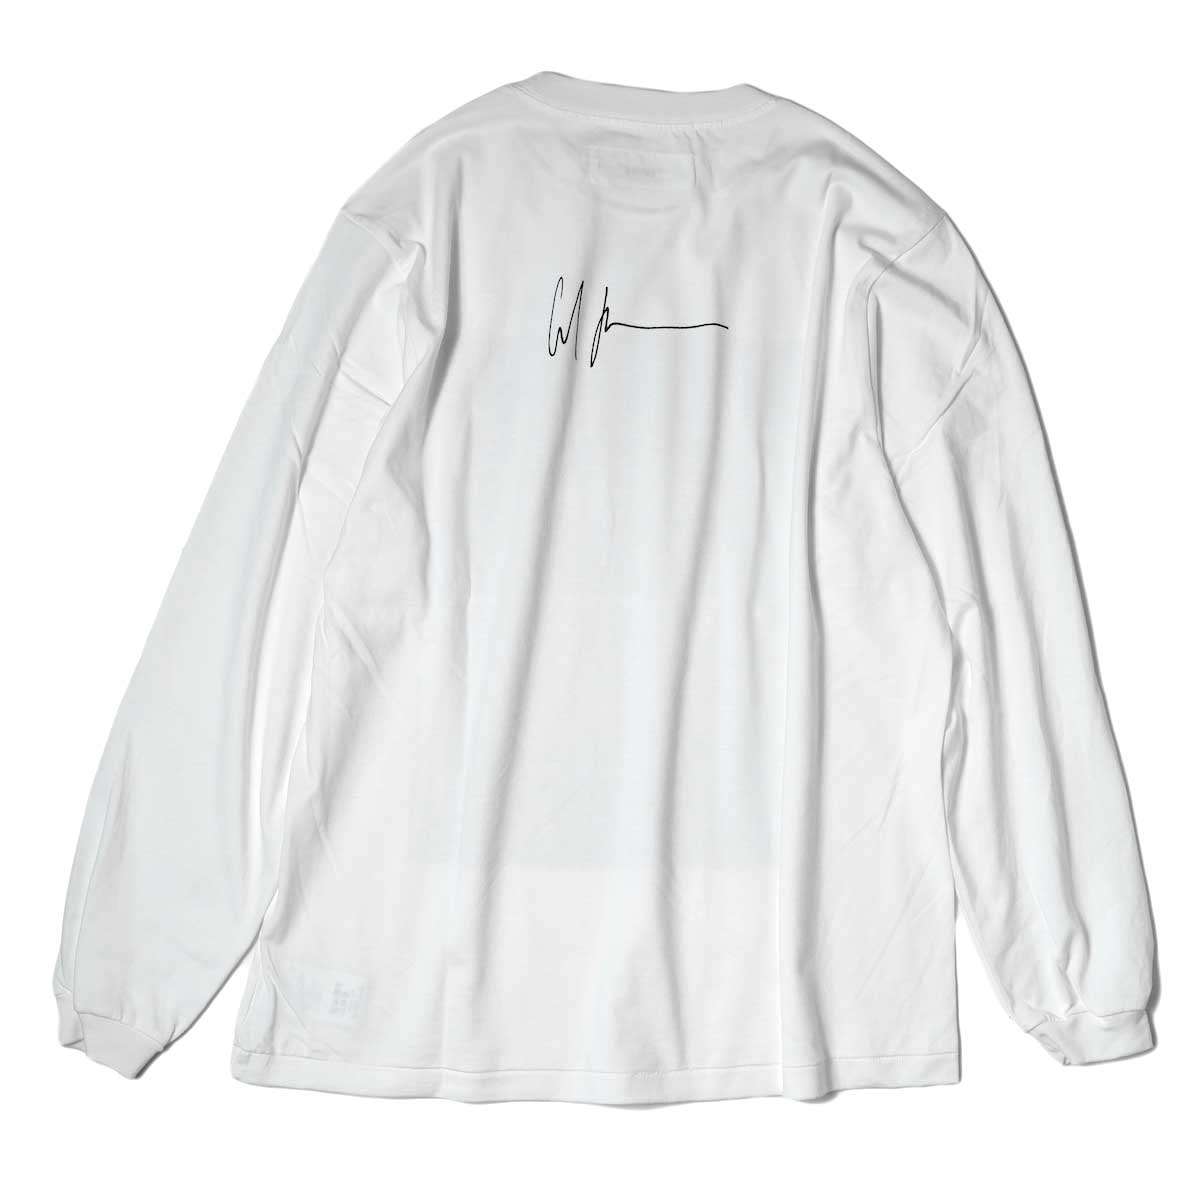 JANE SMITH / CADILLAC PLYMOUTH L/S T-Shirt (White) 背面